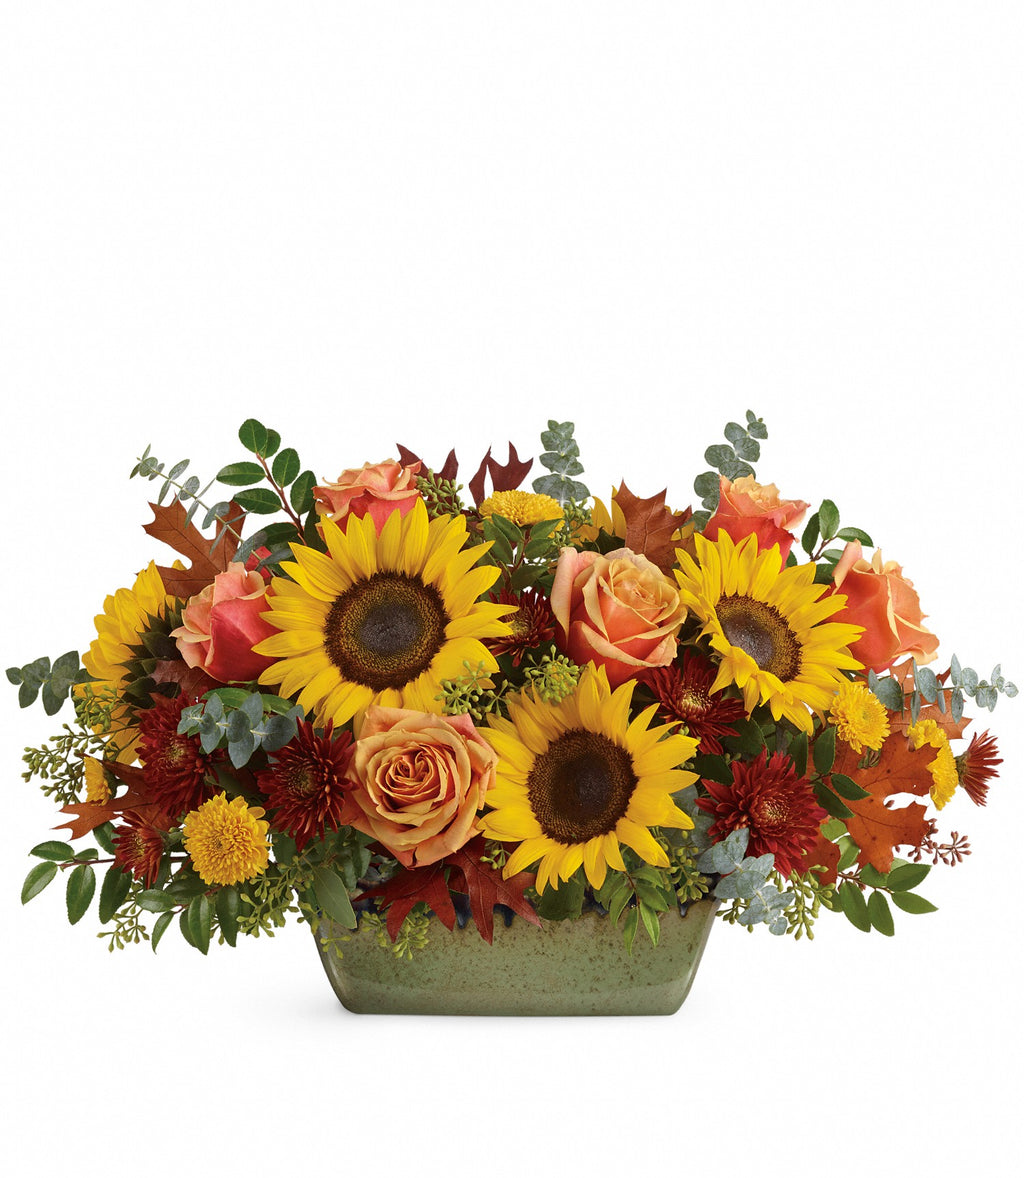 Sunflower Farm Centerpiece